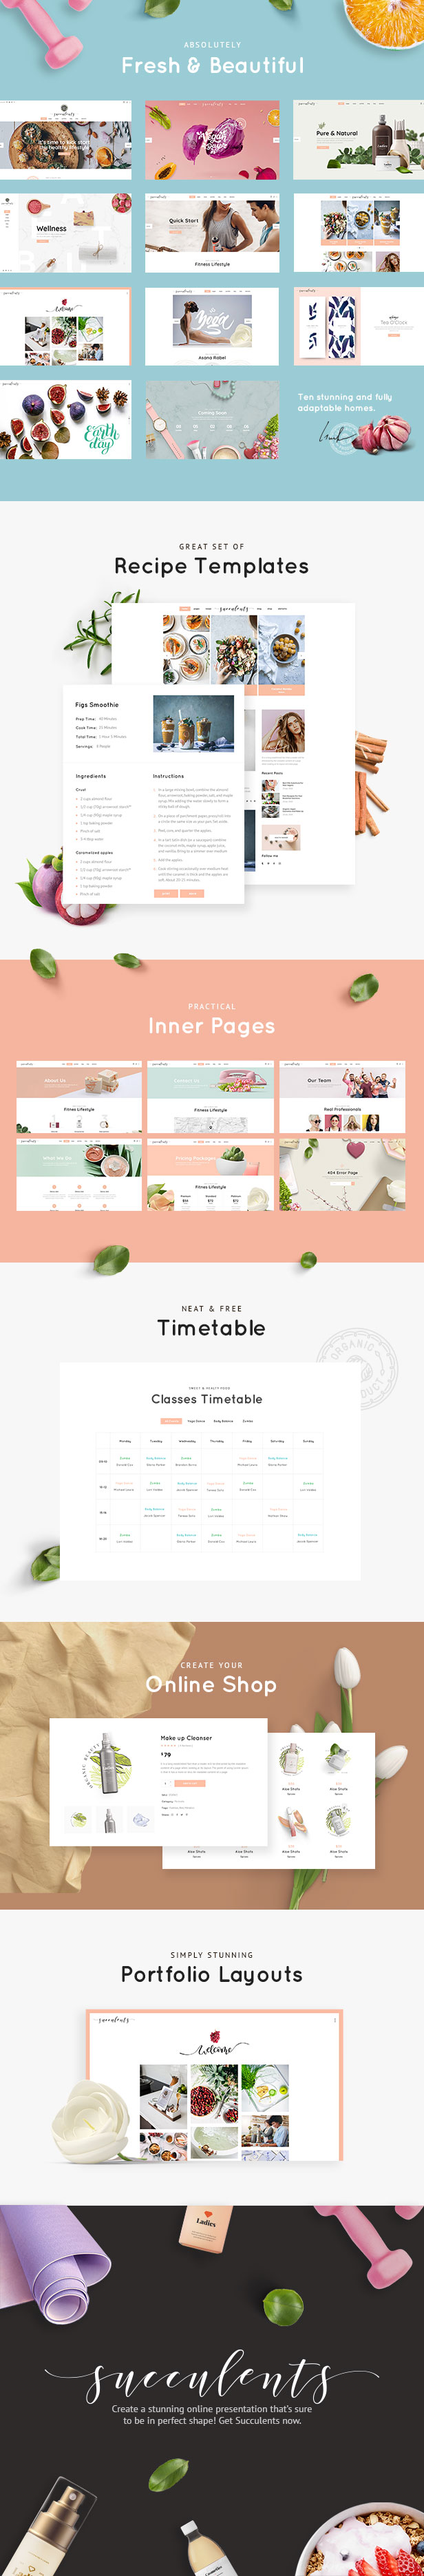 WordPress theme Succulents - A Healthy Lifestyle and Wellness Theme (Health & Beauty)